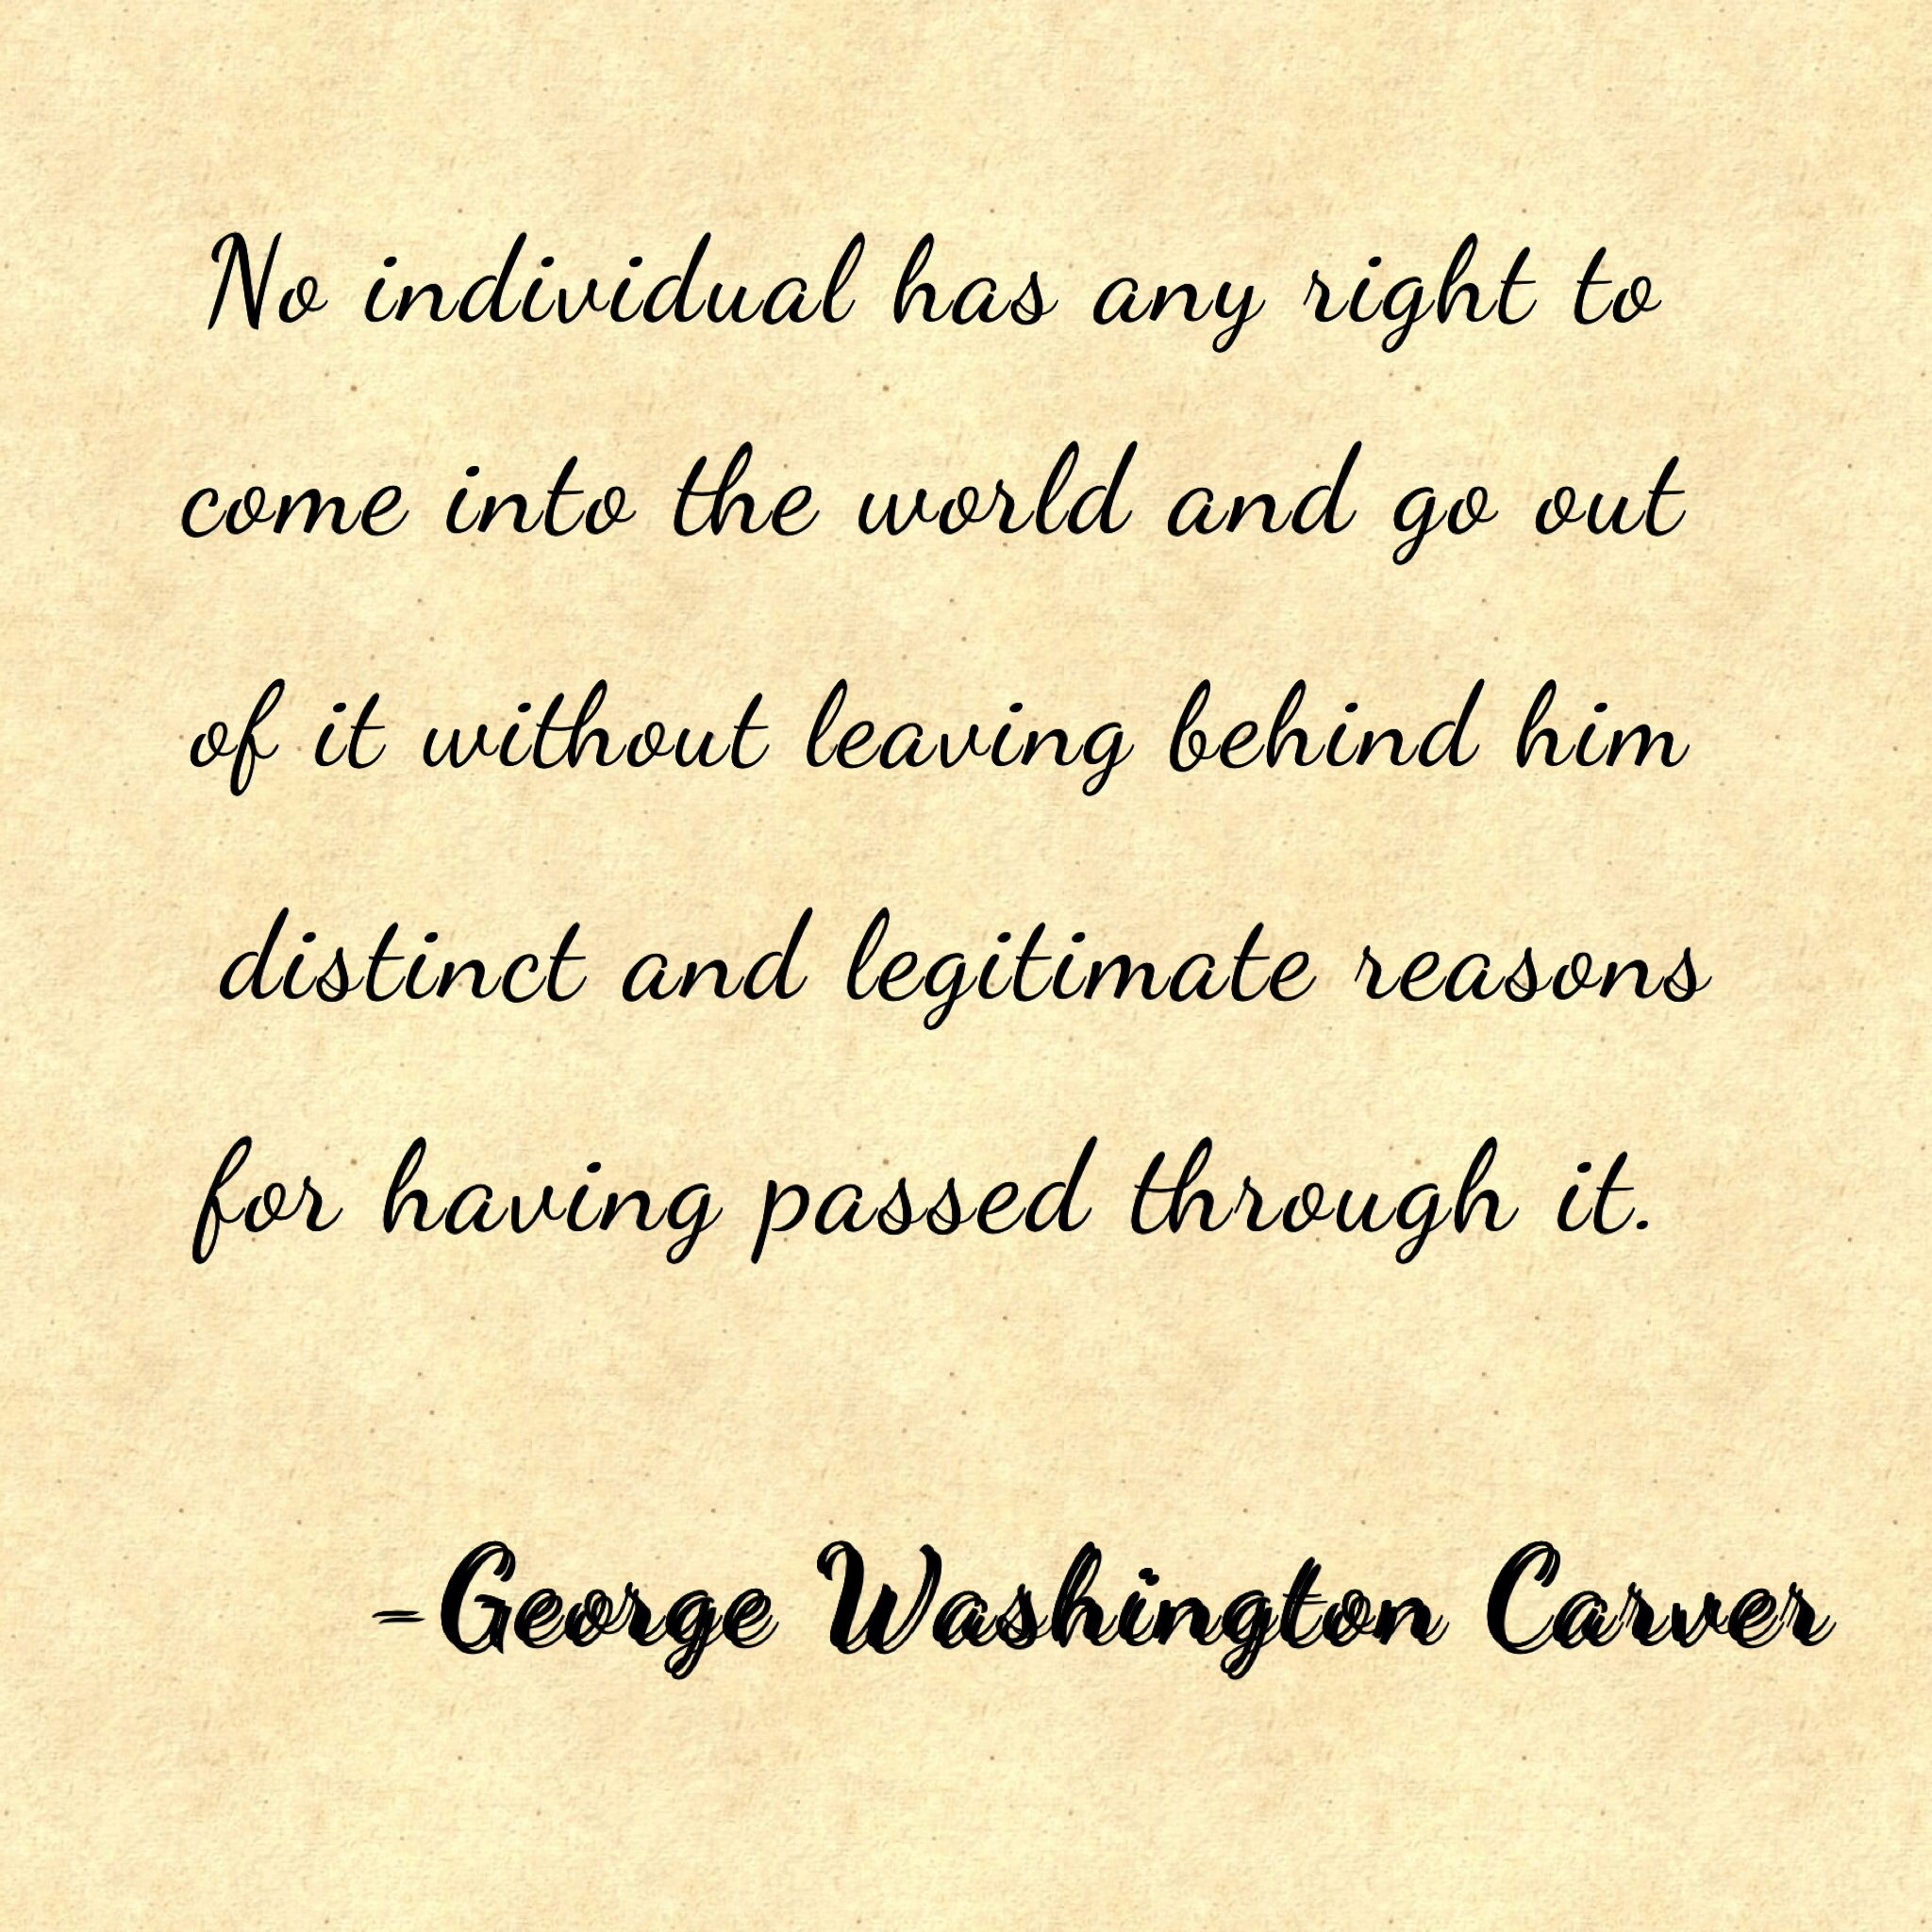 george washington carver essay research report on george  best images about my humble hero george washington carver on 17 best images about my humble